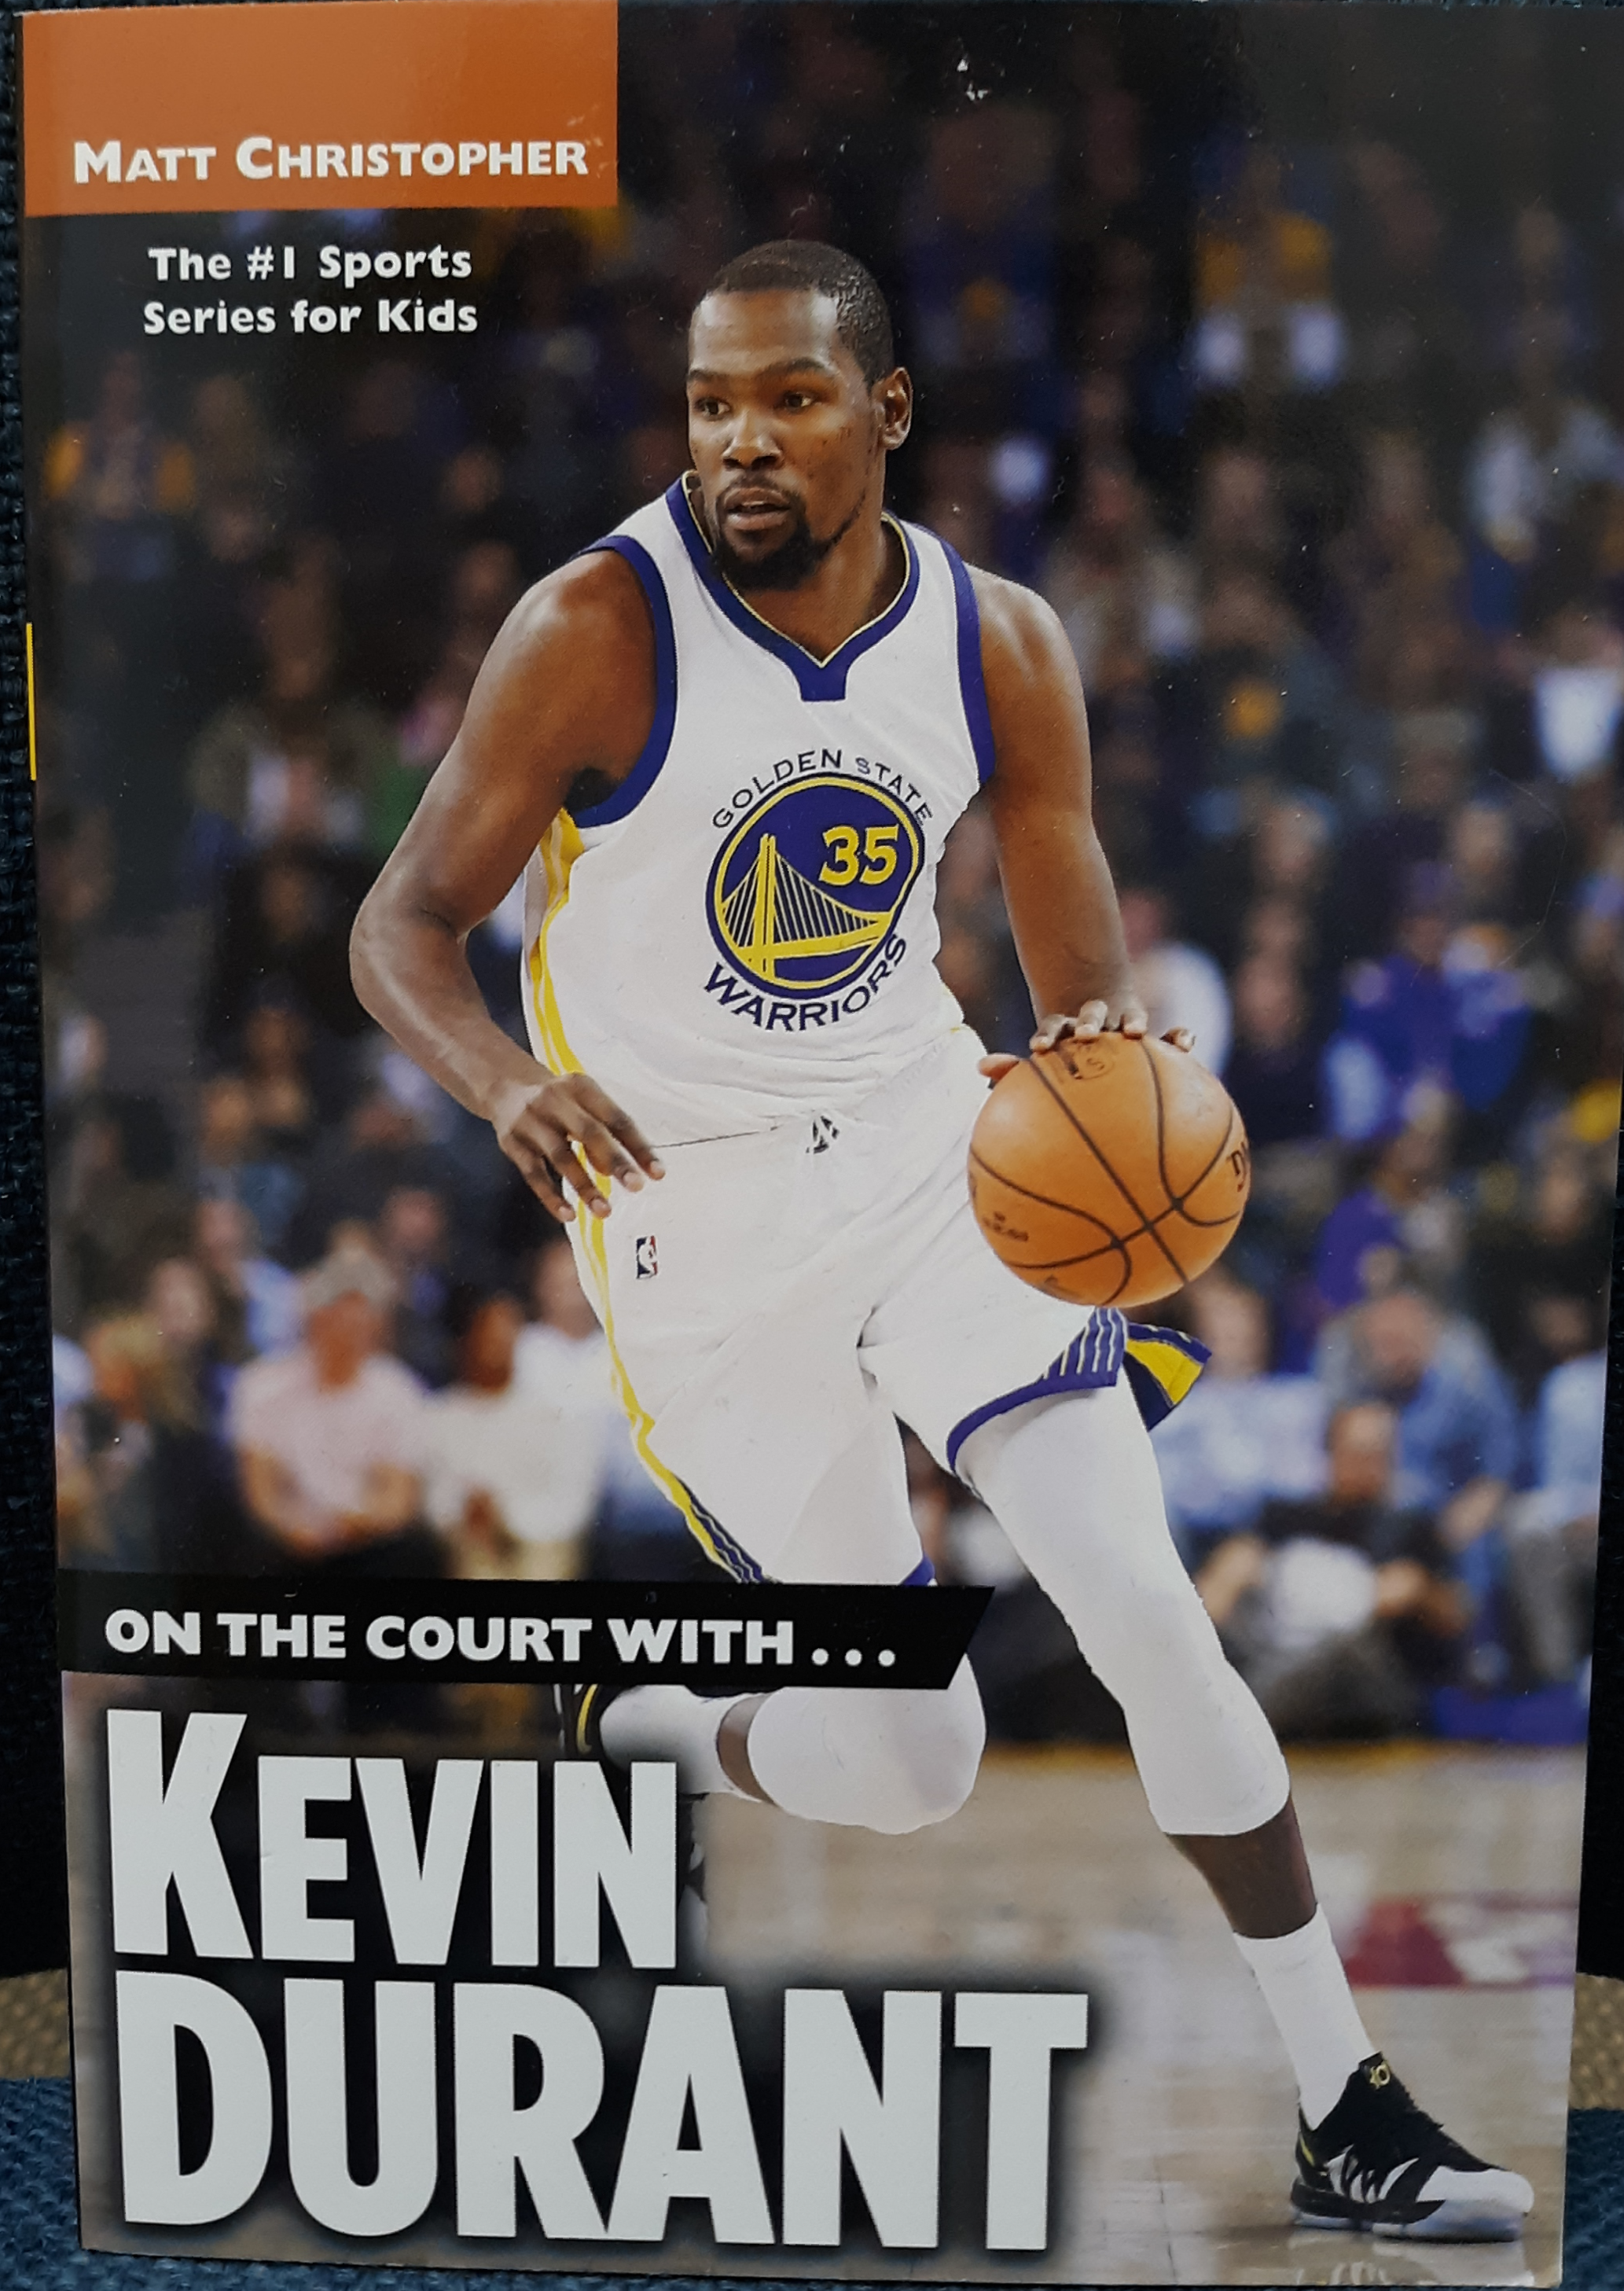 https://0201.nccdn.net/1_2/000/000/0a1/acc/on-the-court-with-kevin-durant-.png